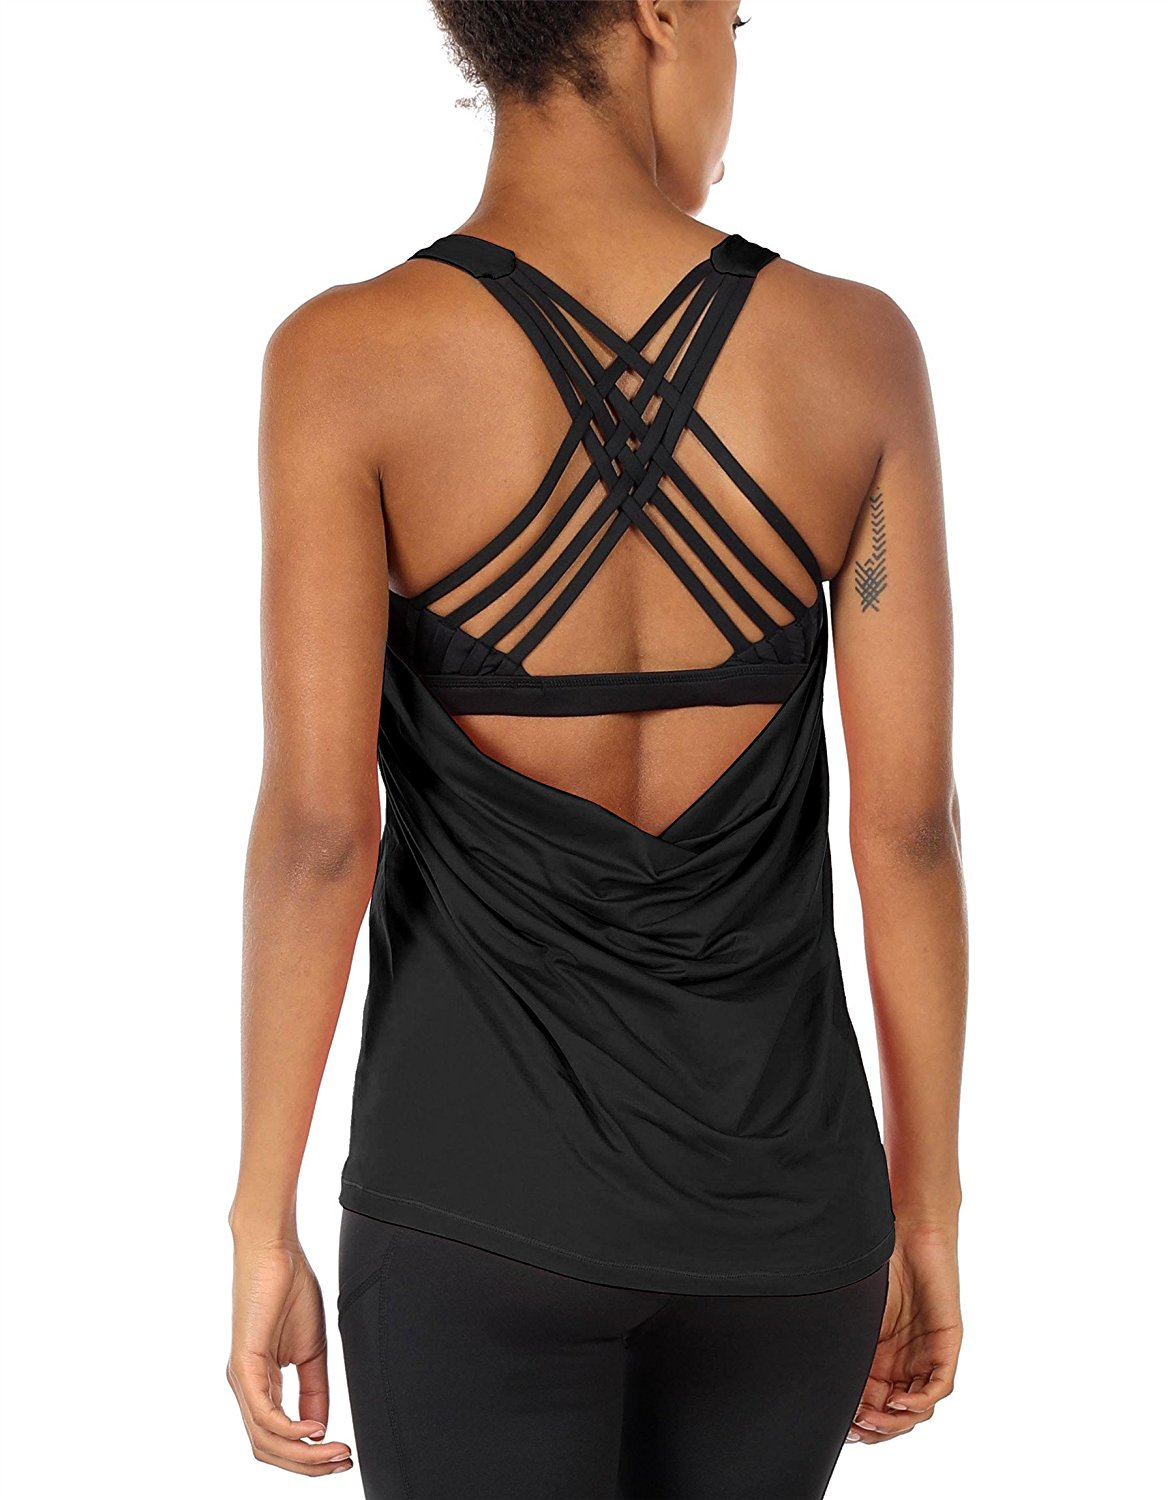 8f52cc1594703 Get Quotations · icyzone Yoga Tops Workouts Clothes Activewear Built in Bra  Tank Tops for Women